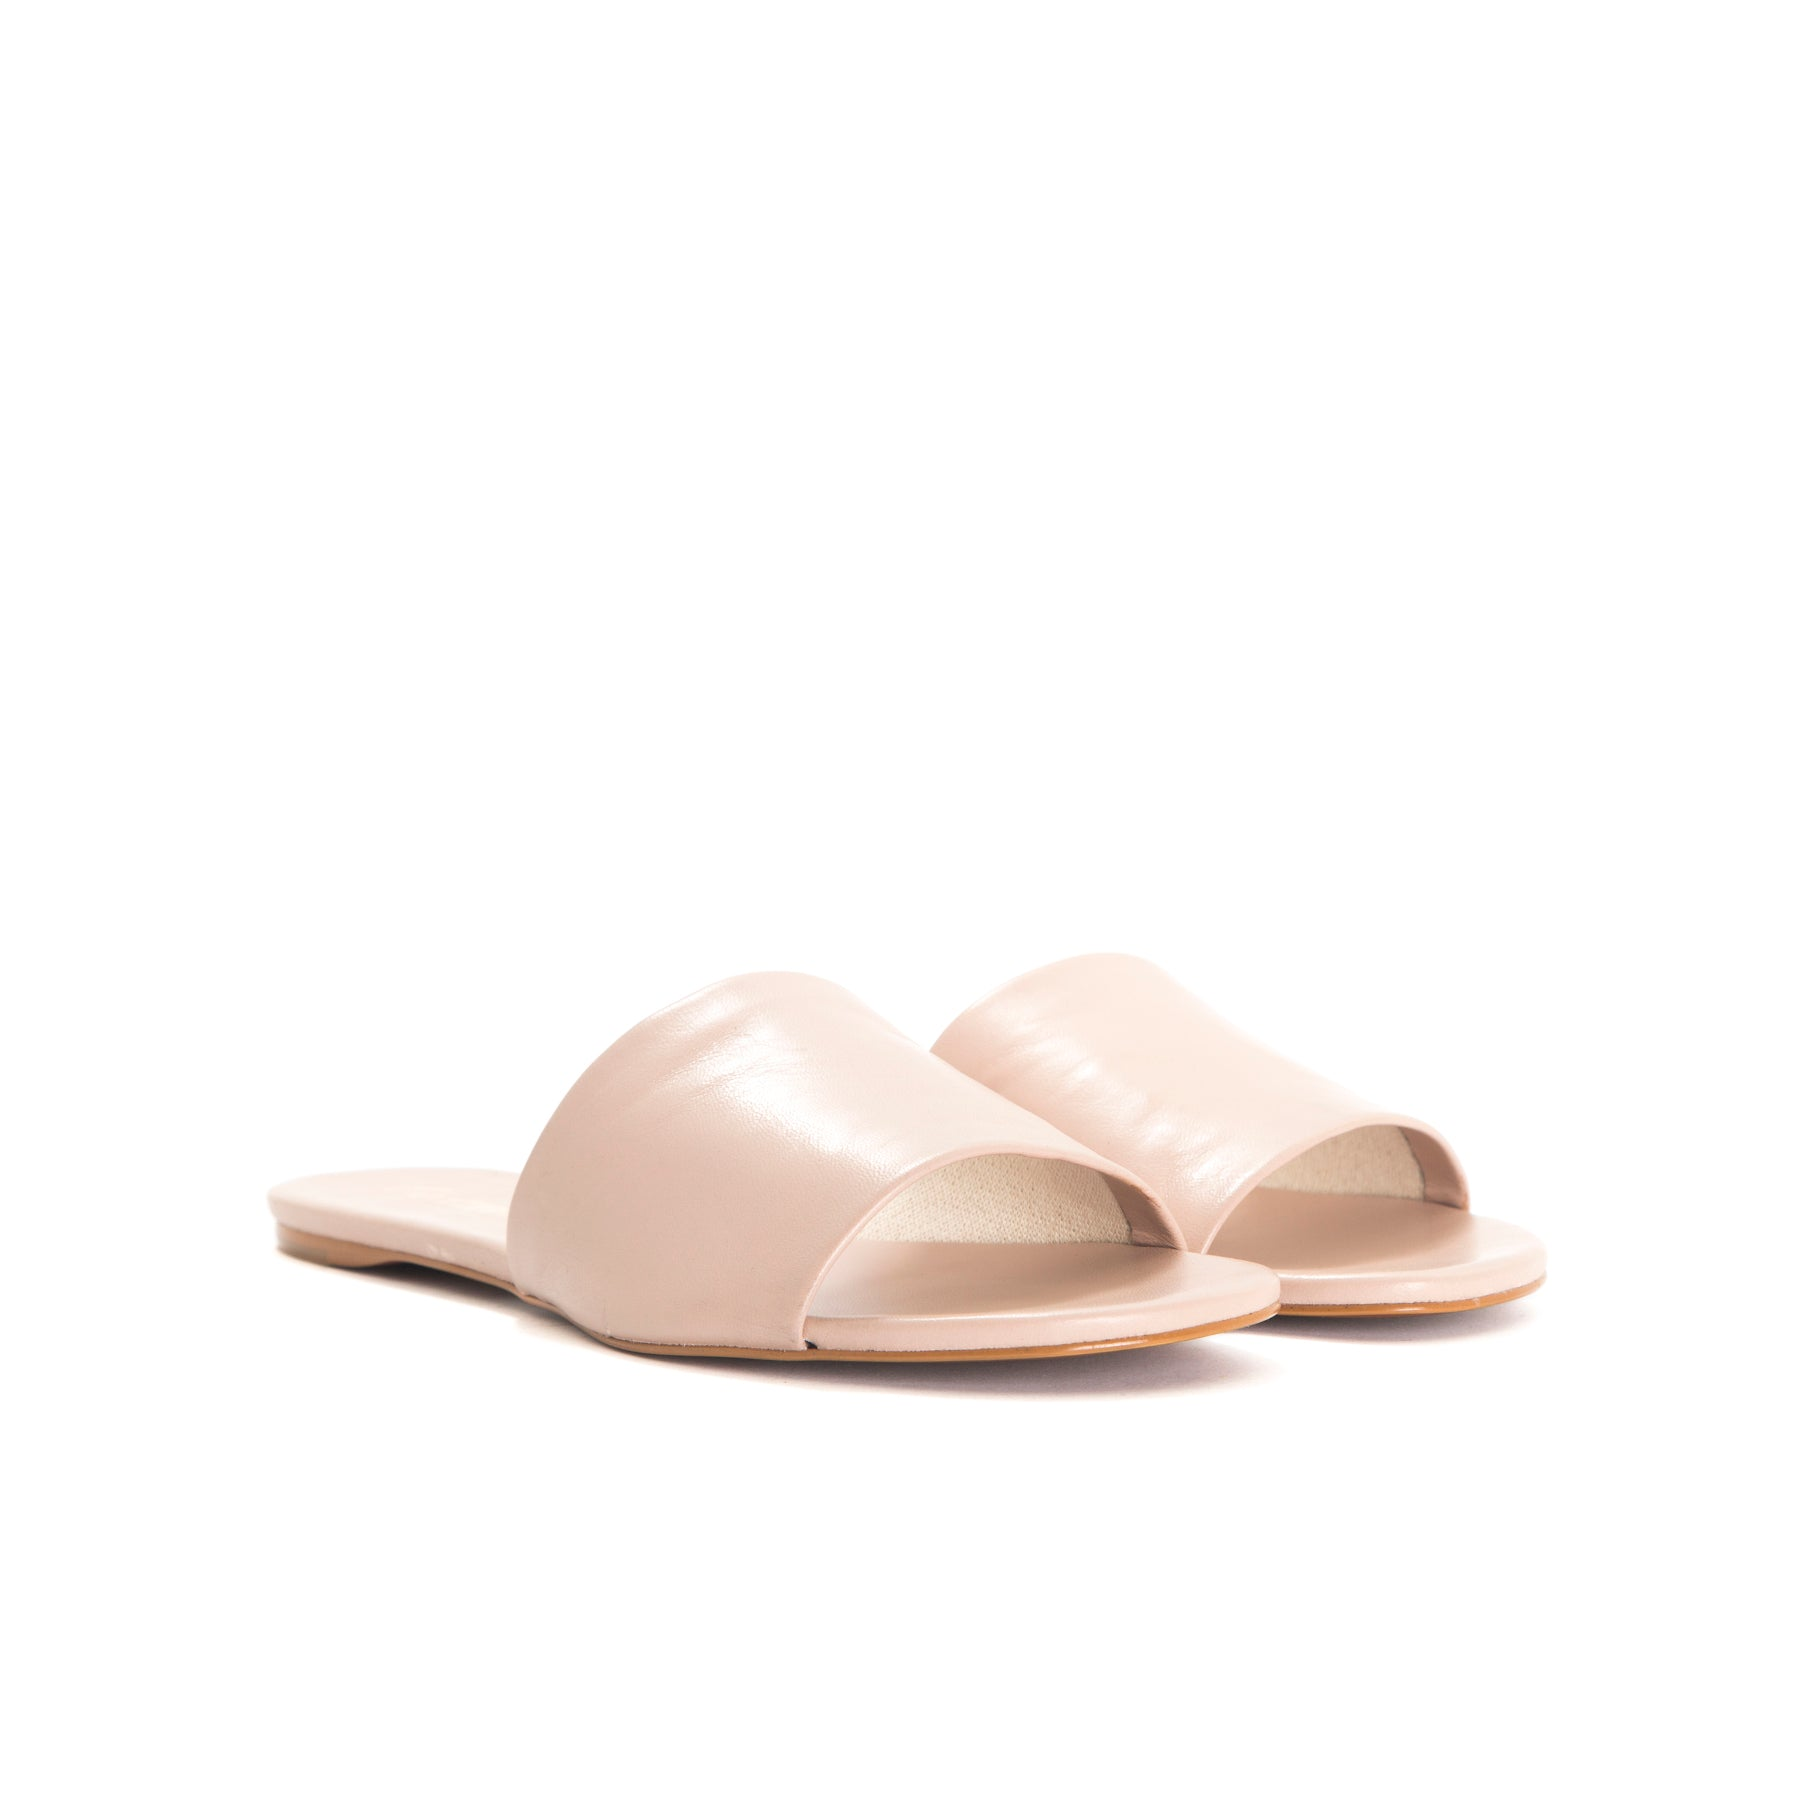 Varadero Nude Leather Sandals